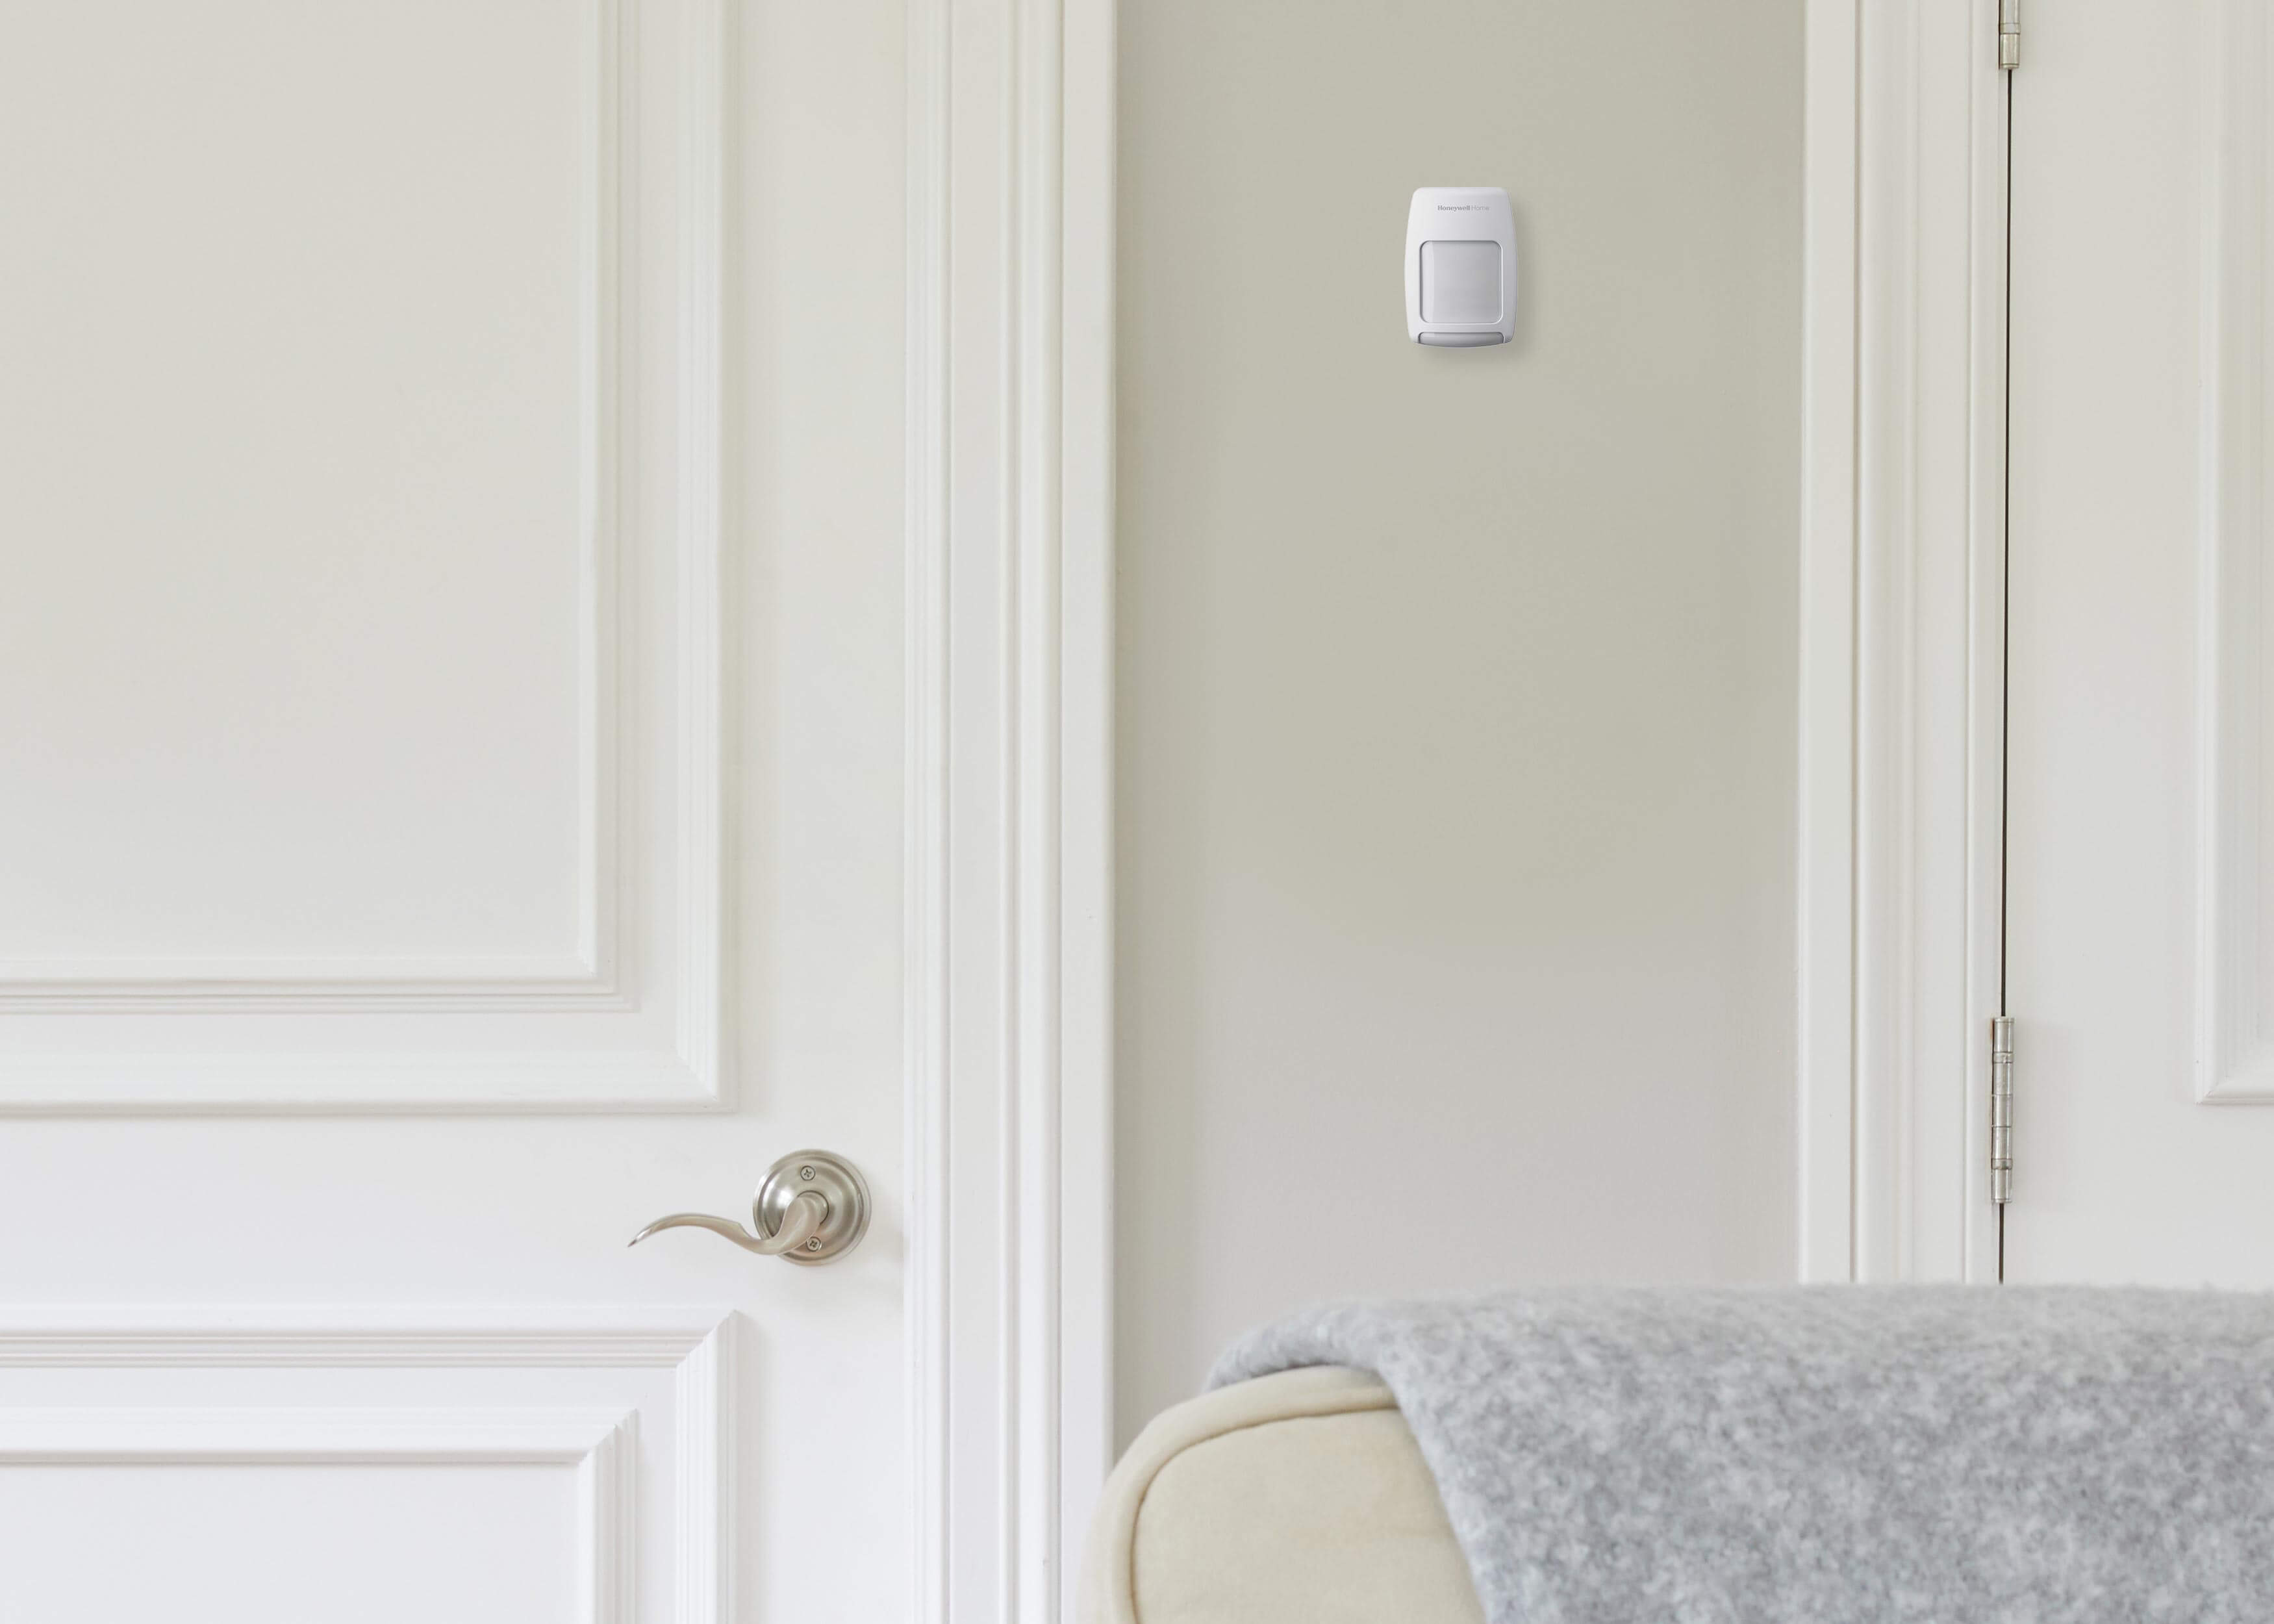 Residential smart home security system